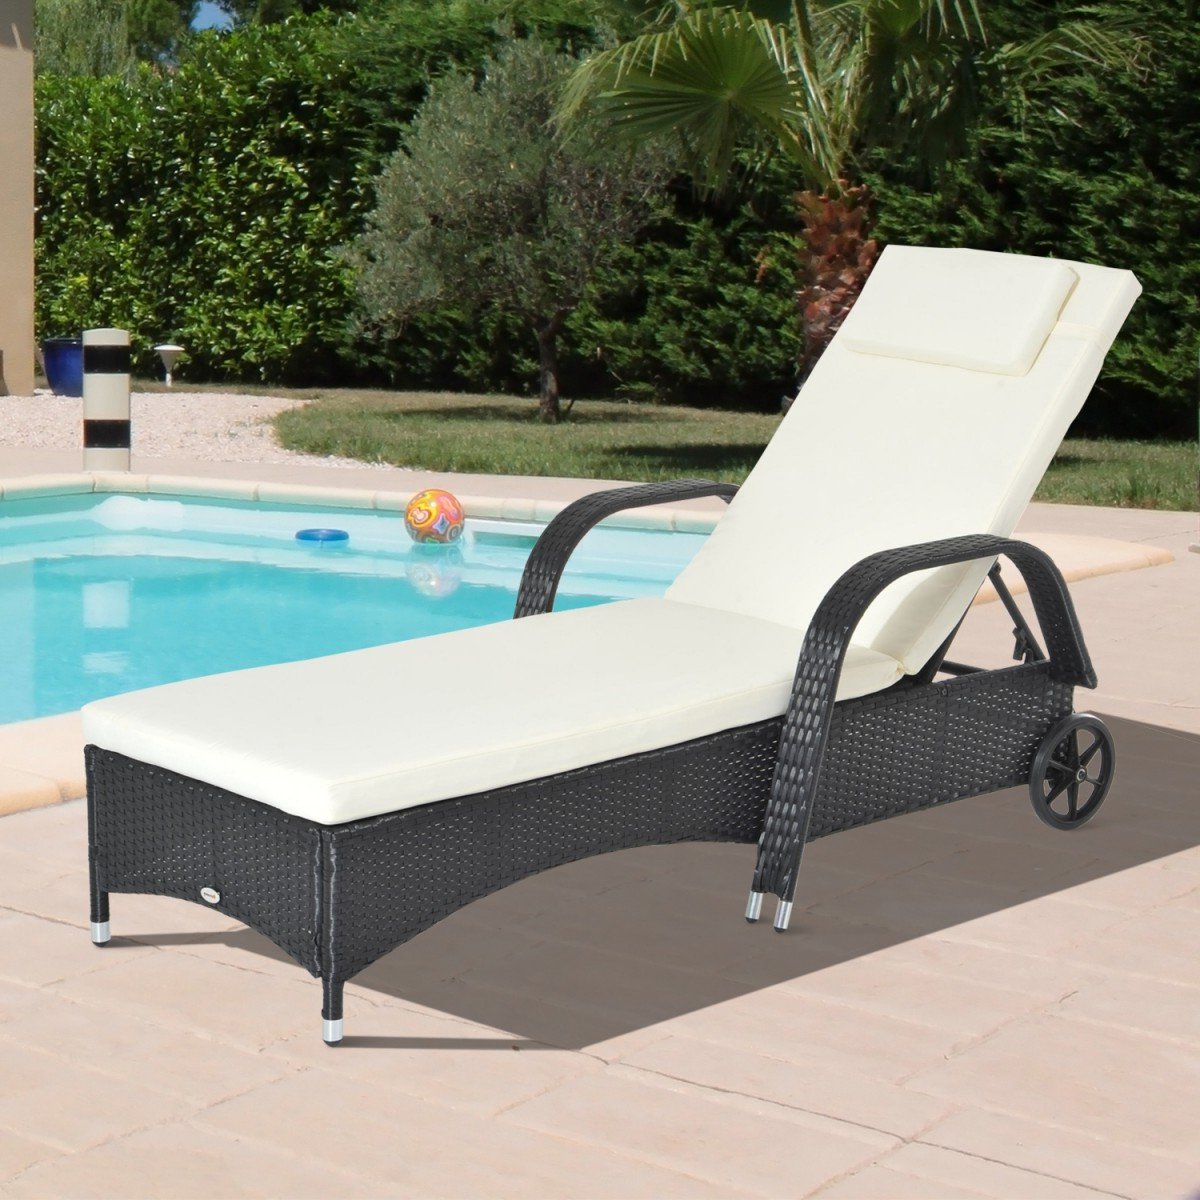 All Weather Single Outdoor Adjustable Loungers Intended For Trendy Outsunny Adjustable Rattan Sun Lounger Chair – Black, Brown Or Grey (View 25 of 25)